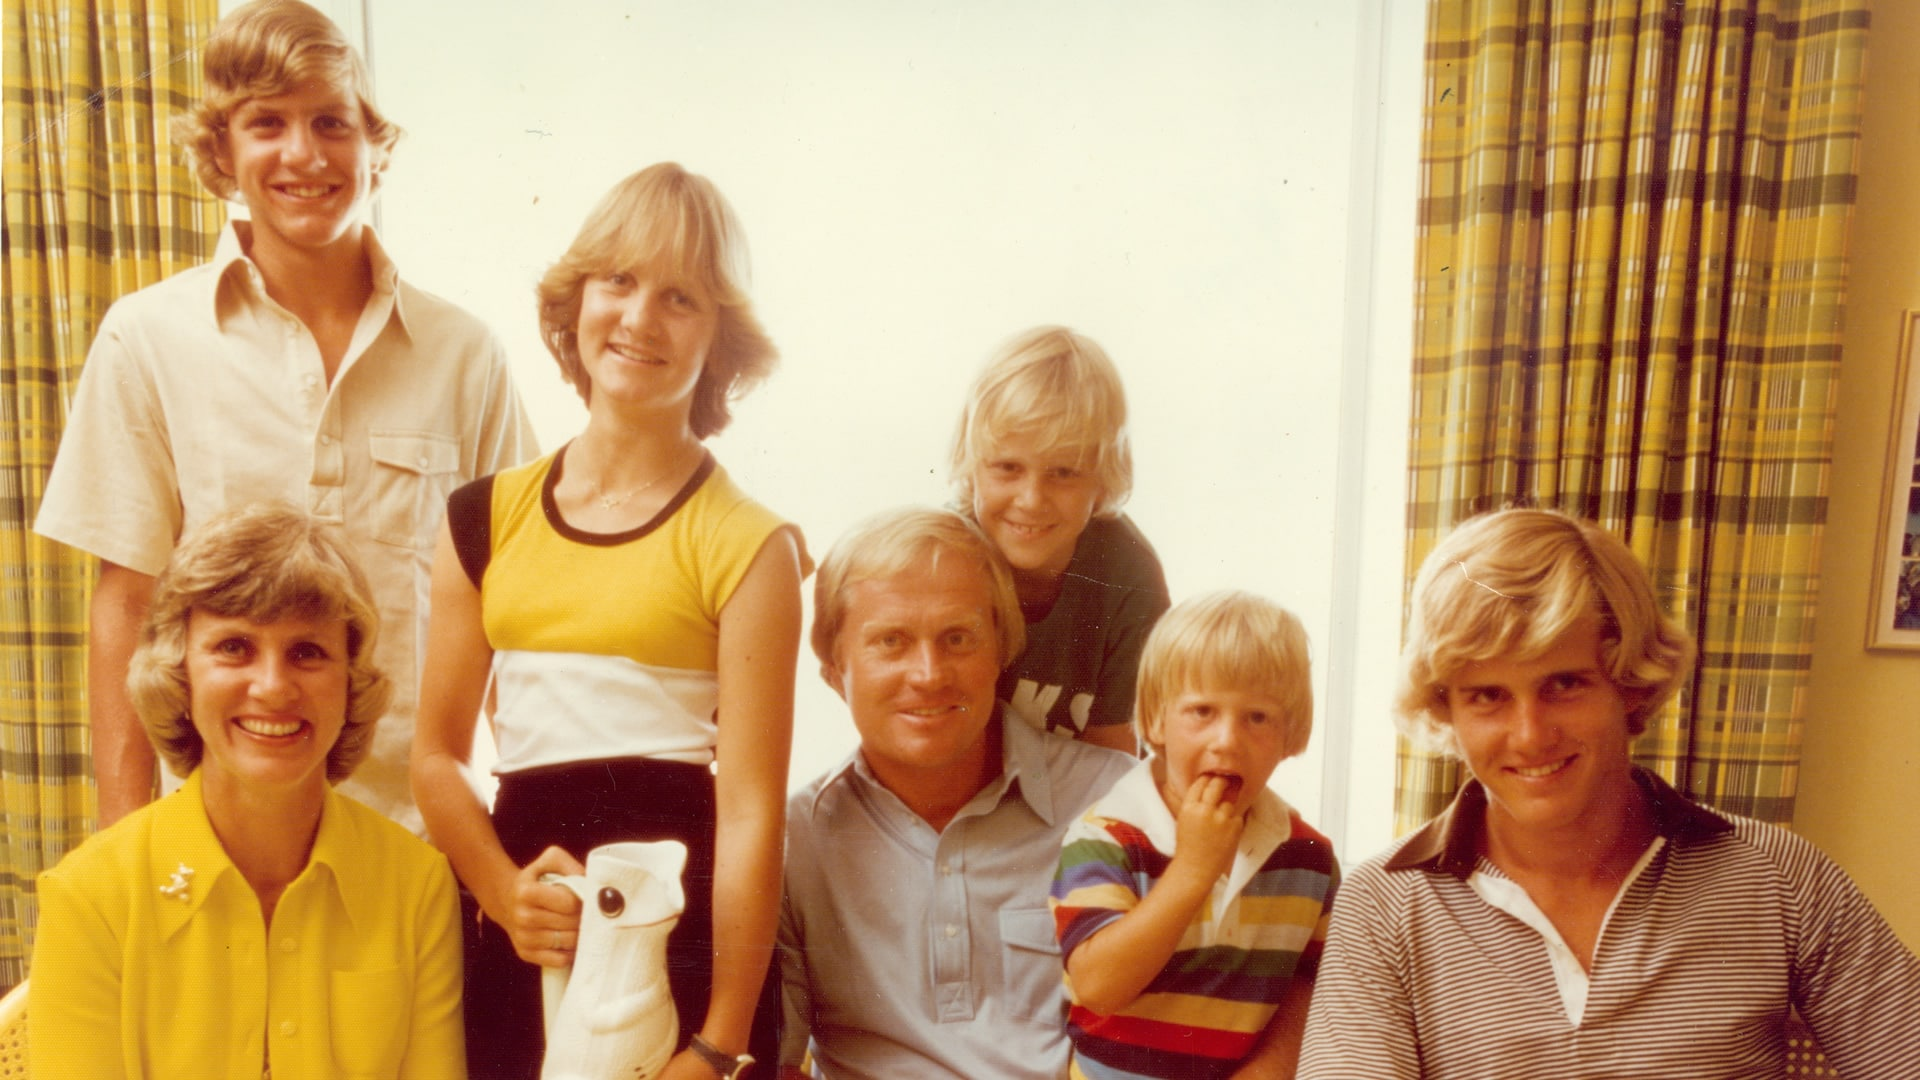 Jack Nicklaus and family